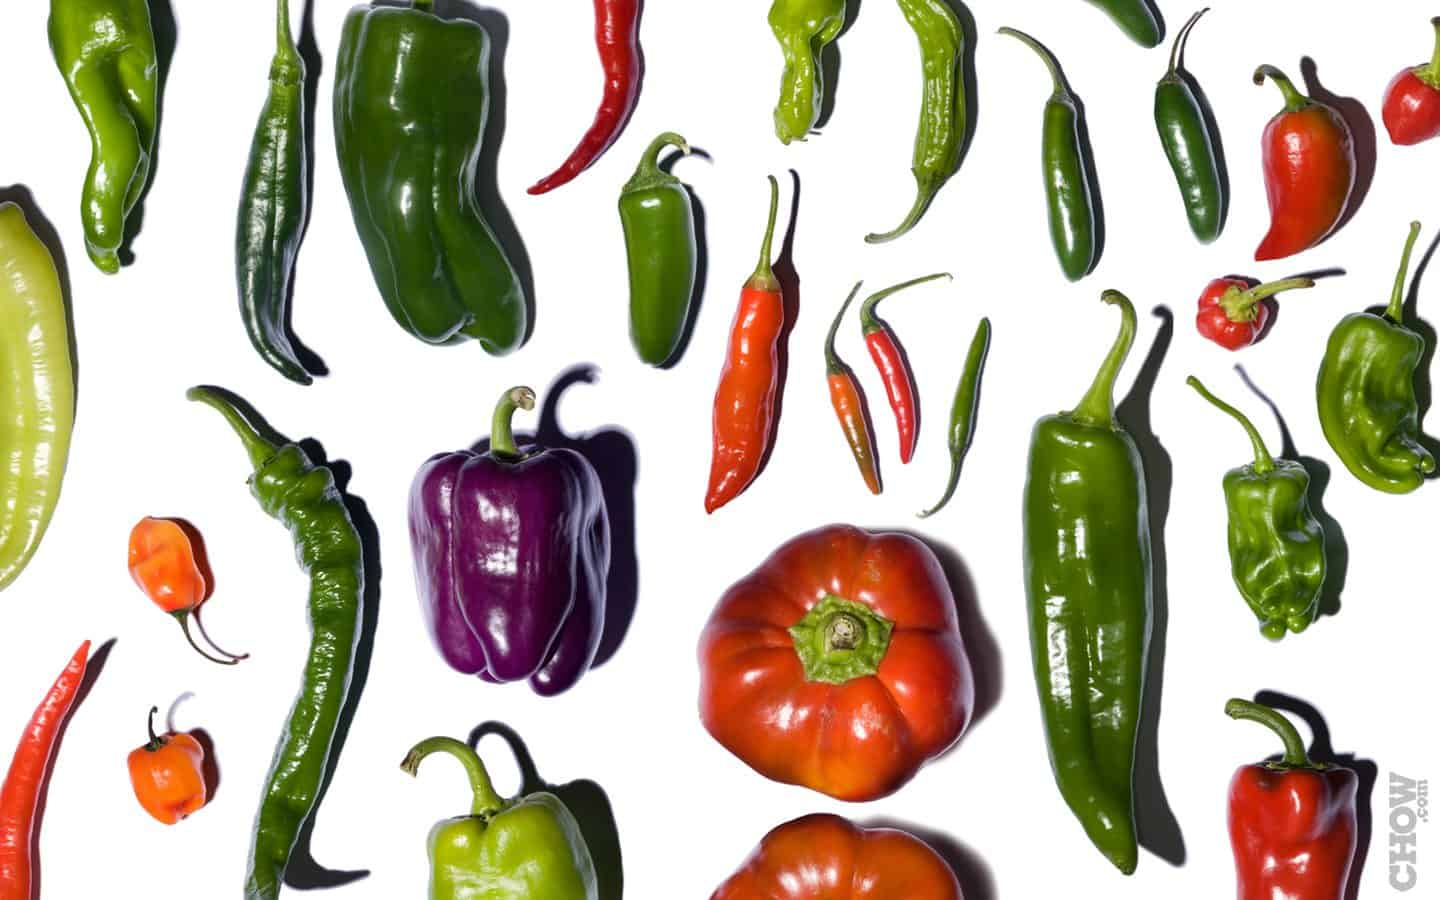 Using Peppers to Burn More Fat 1 - Florida Independent